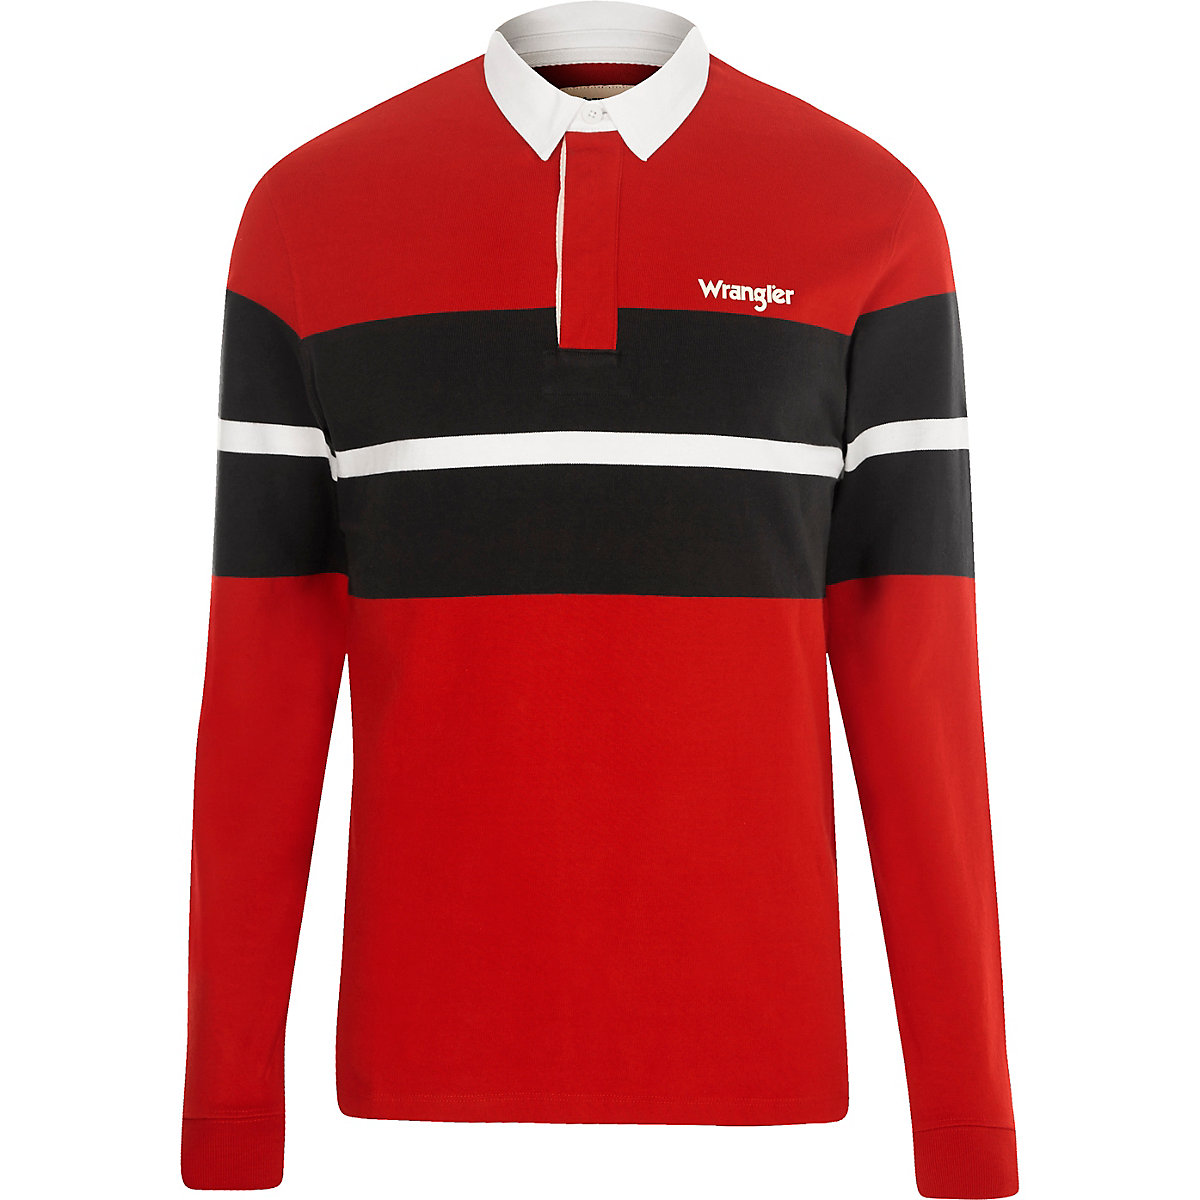 Wrangler red block long sleeve rugby shirt